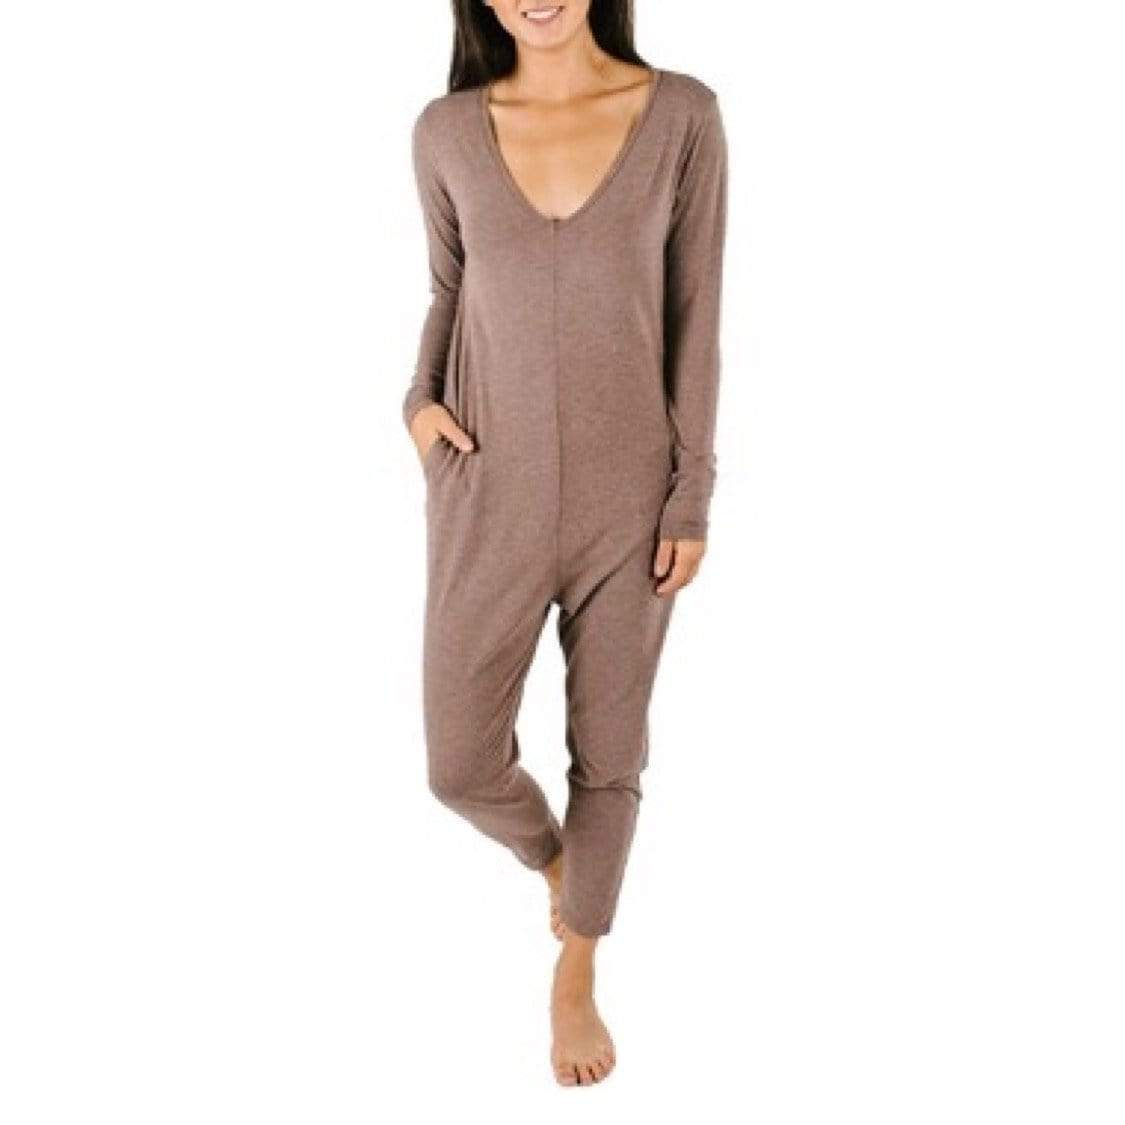 Smash + Tess- Friday Romper In Chai Latte Jumpsuits / Rompers Smash+Tess